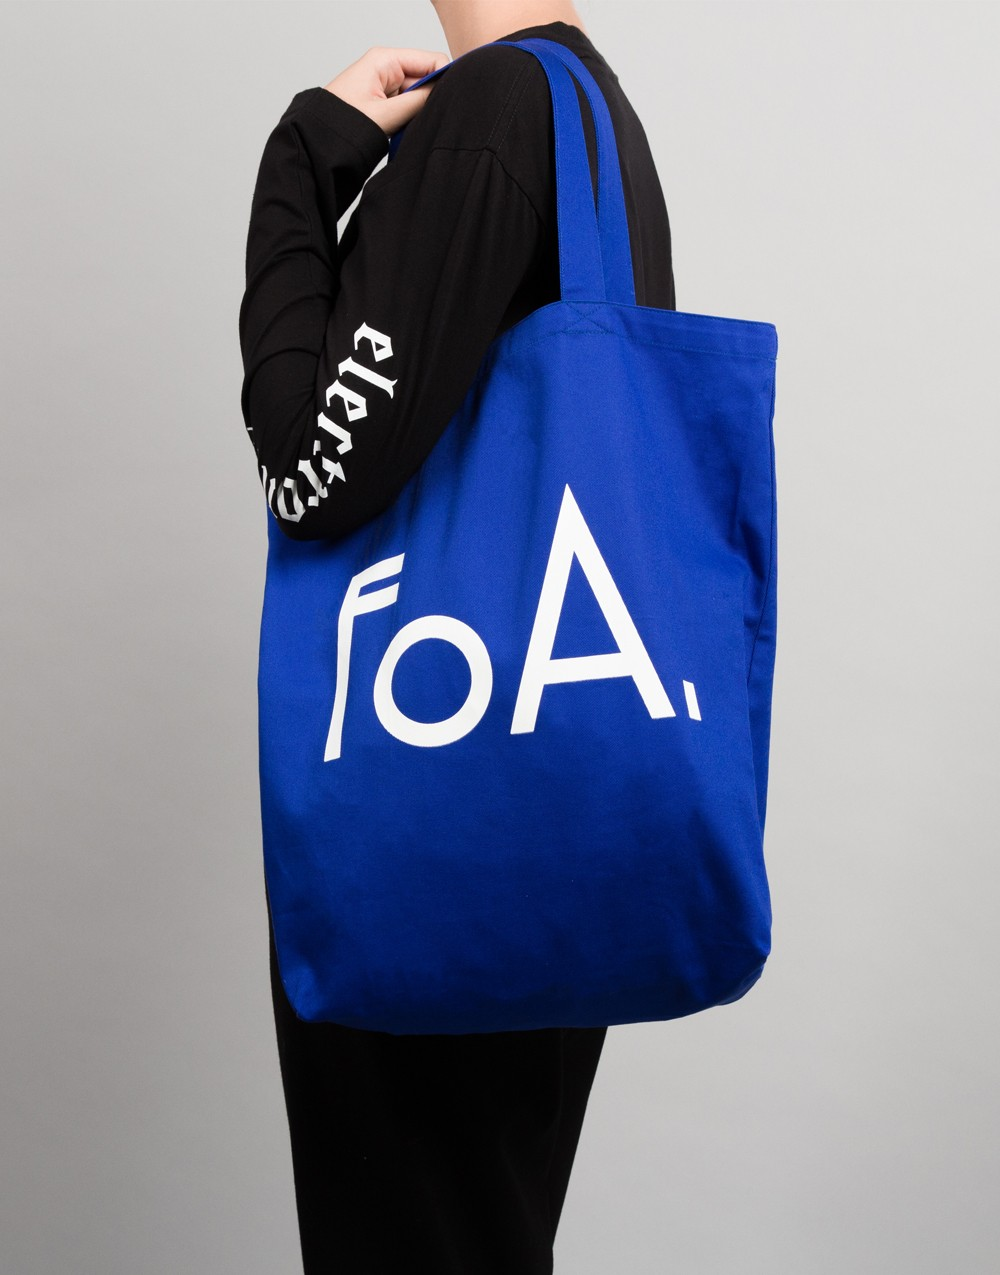 FoA. Logo Bag